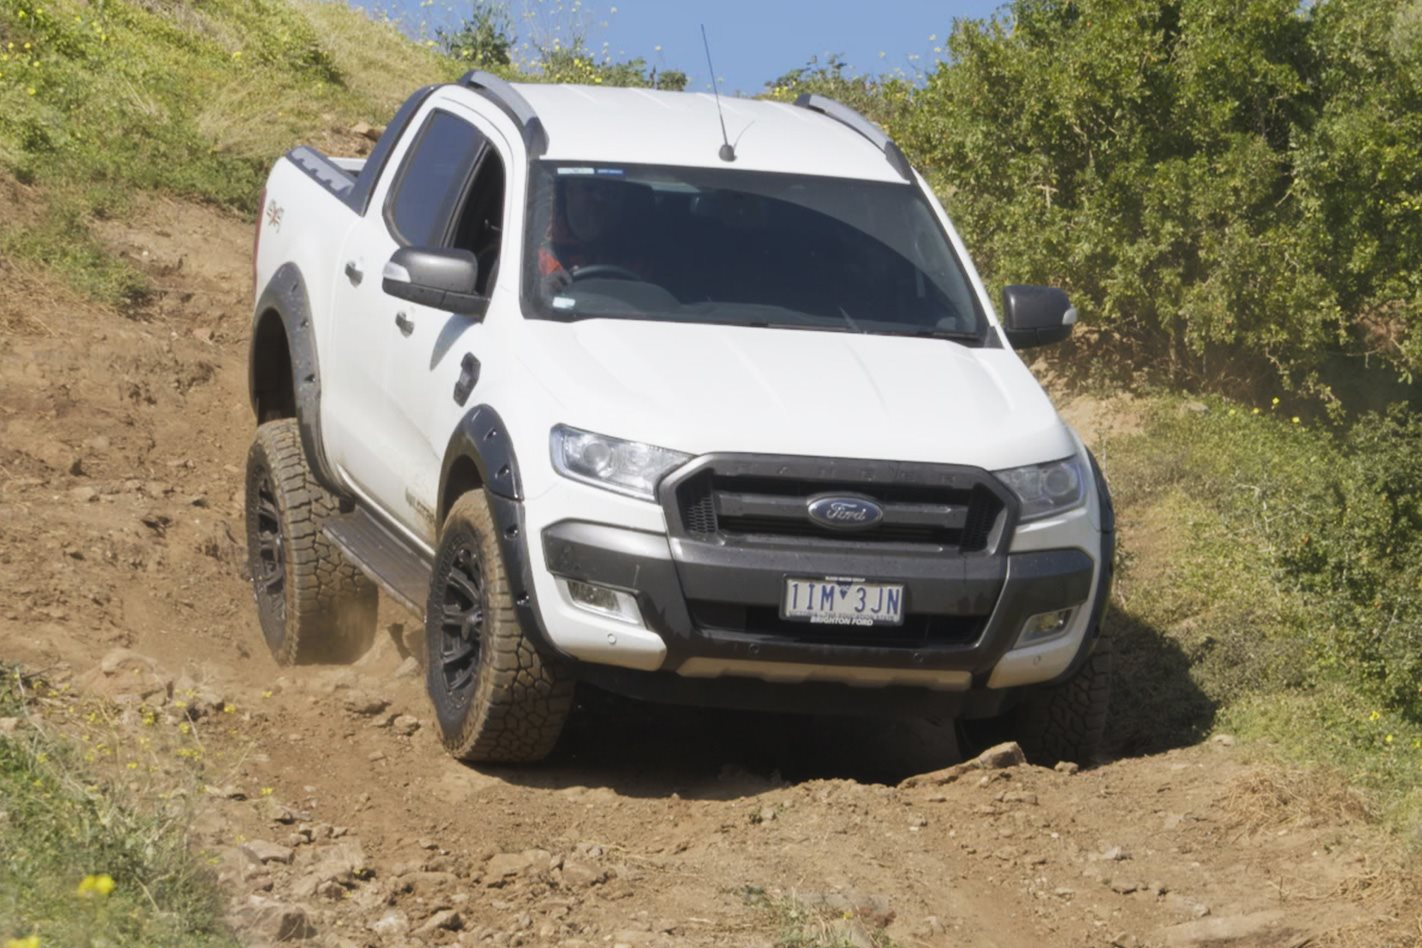 Ford Ranger with Falken Wildpeak AT3W tyres